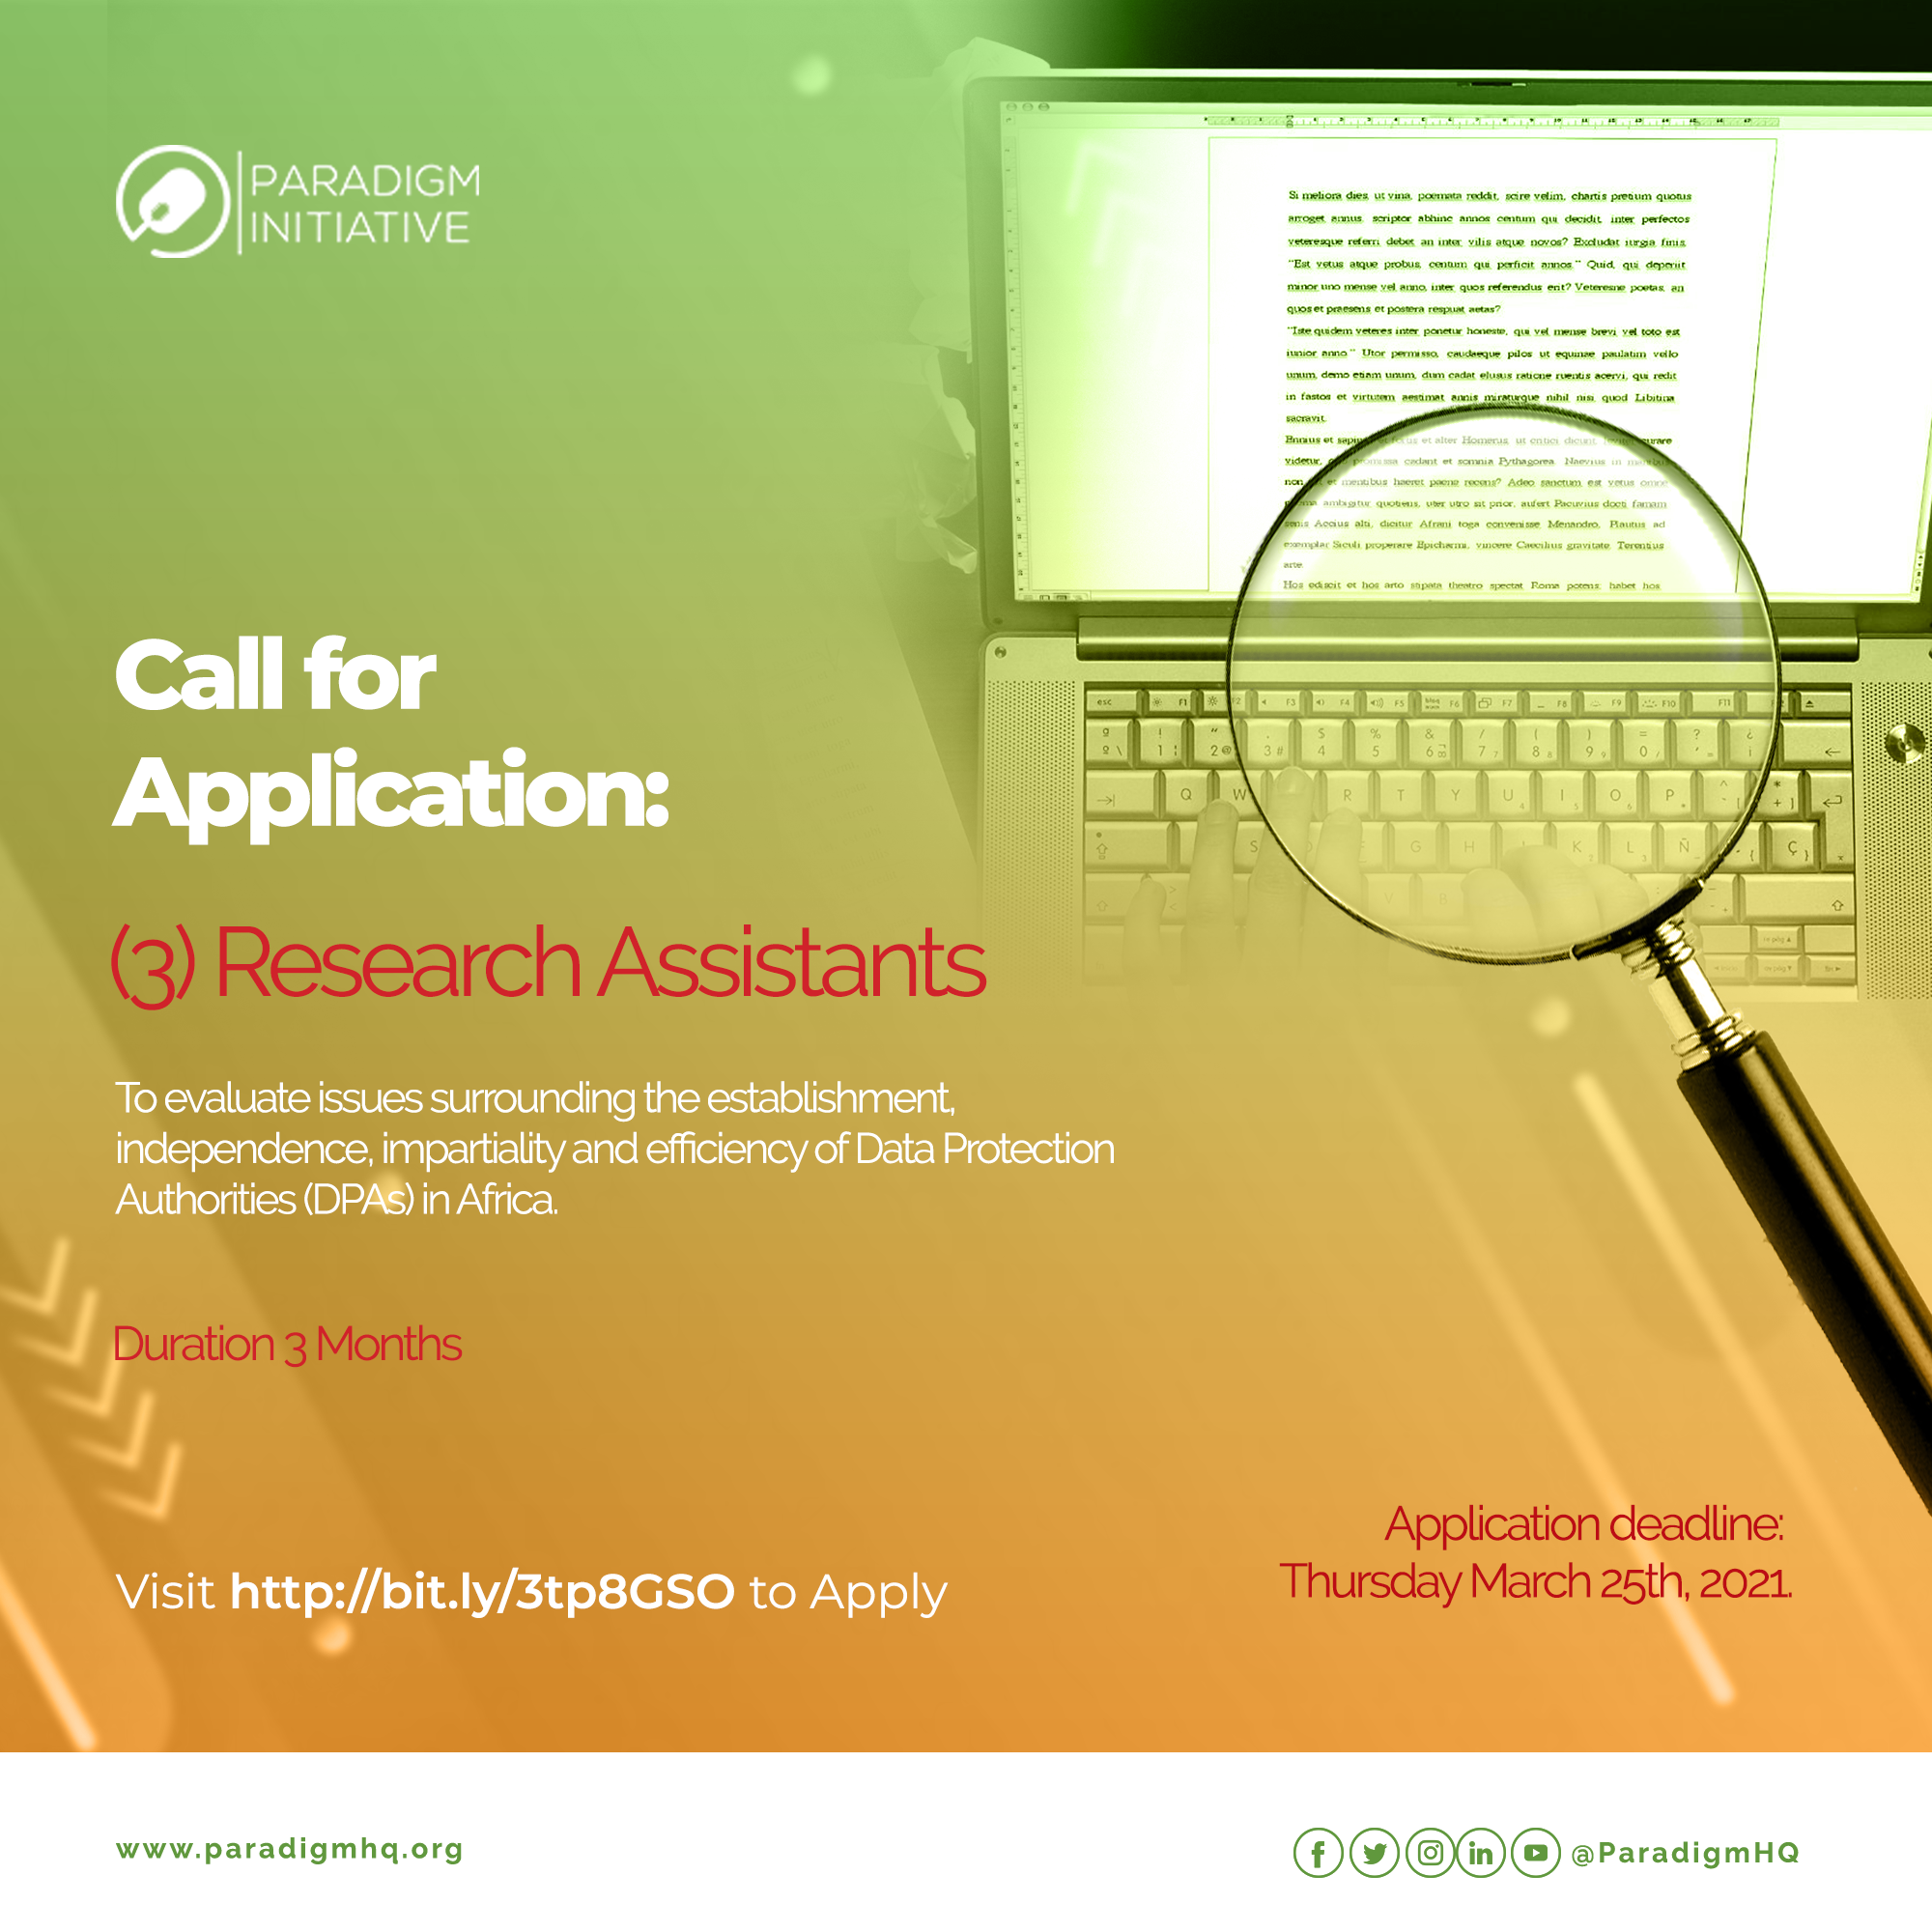 Call for Applications: Research Assistants